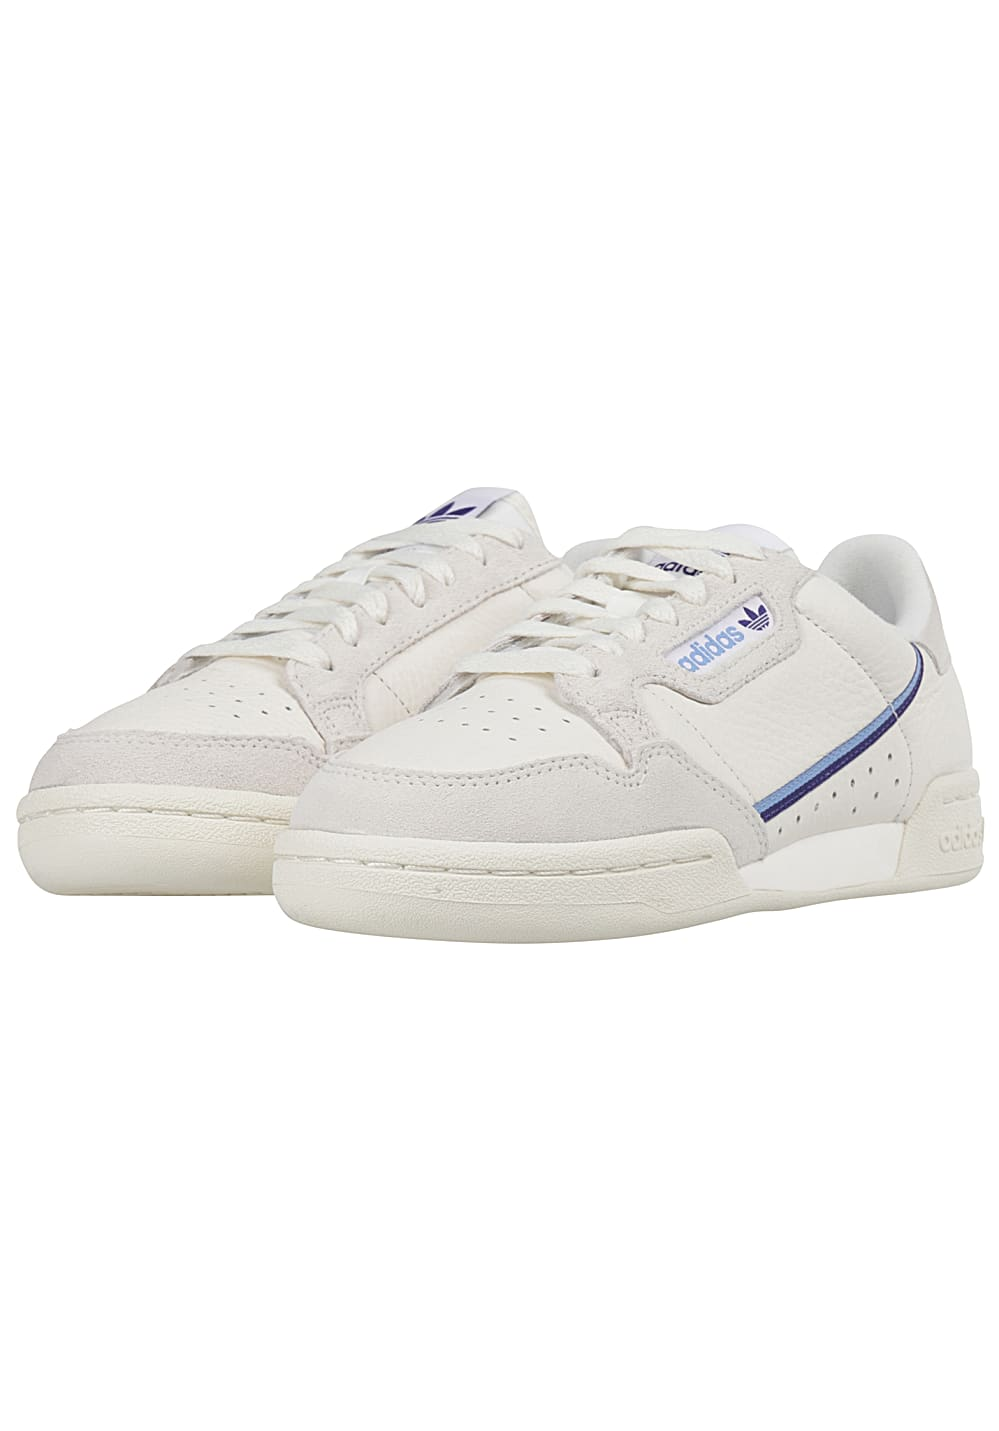 ADIDAS ORIGINALS Continental 80 - Sneakers for Women - Beige